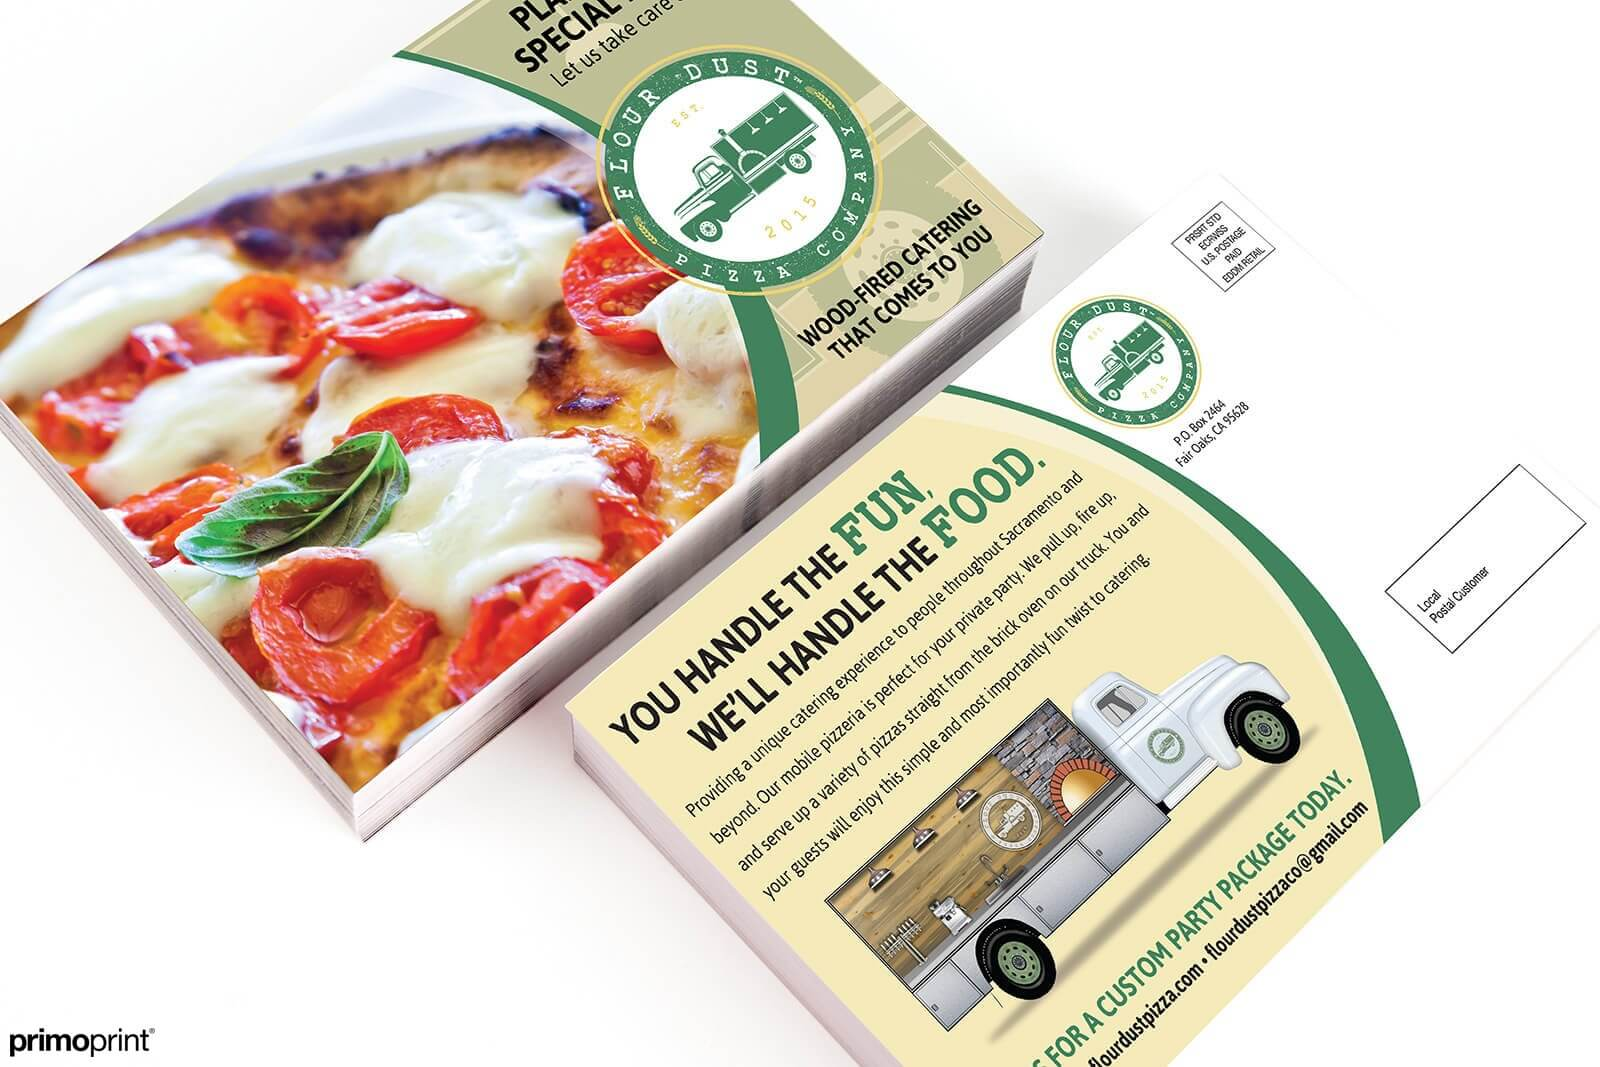 100LB Gloss Cover EDDM Postcard printed for a local pizza company.